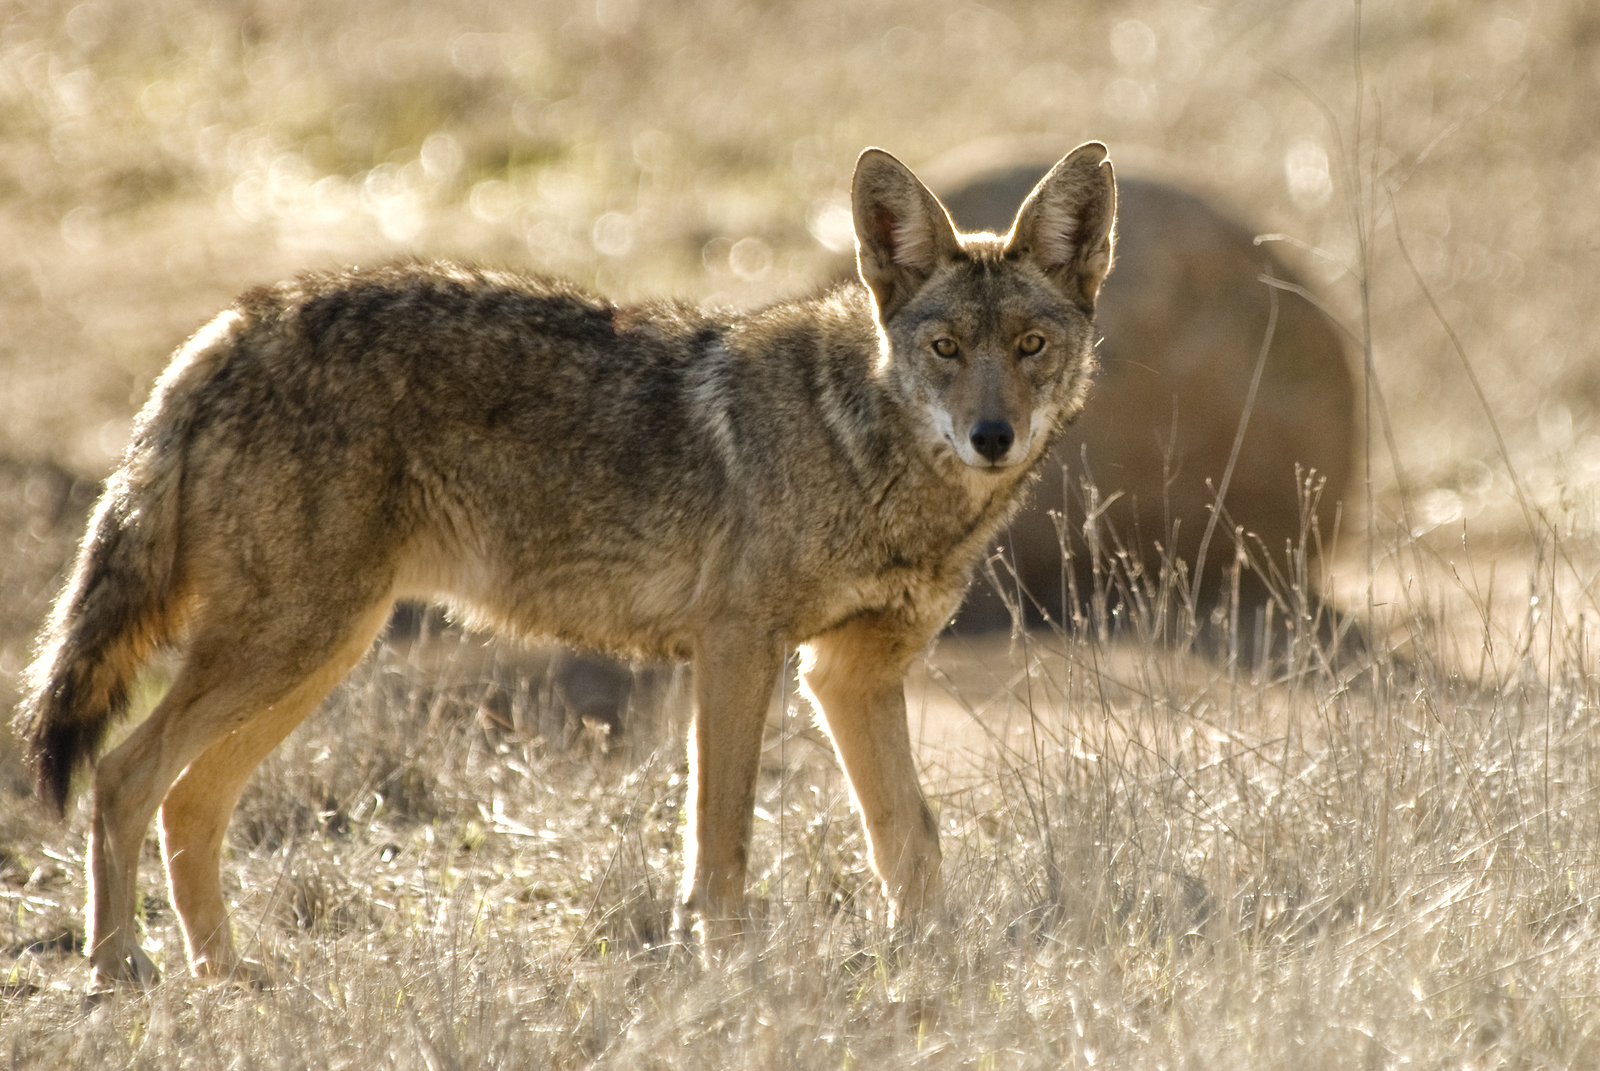 https://i0.wp.com/danthompsongamecalls.com/wp-content/uploads/2014/10/bigstock-Coyote-4186001.jpg